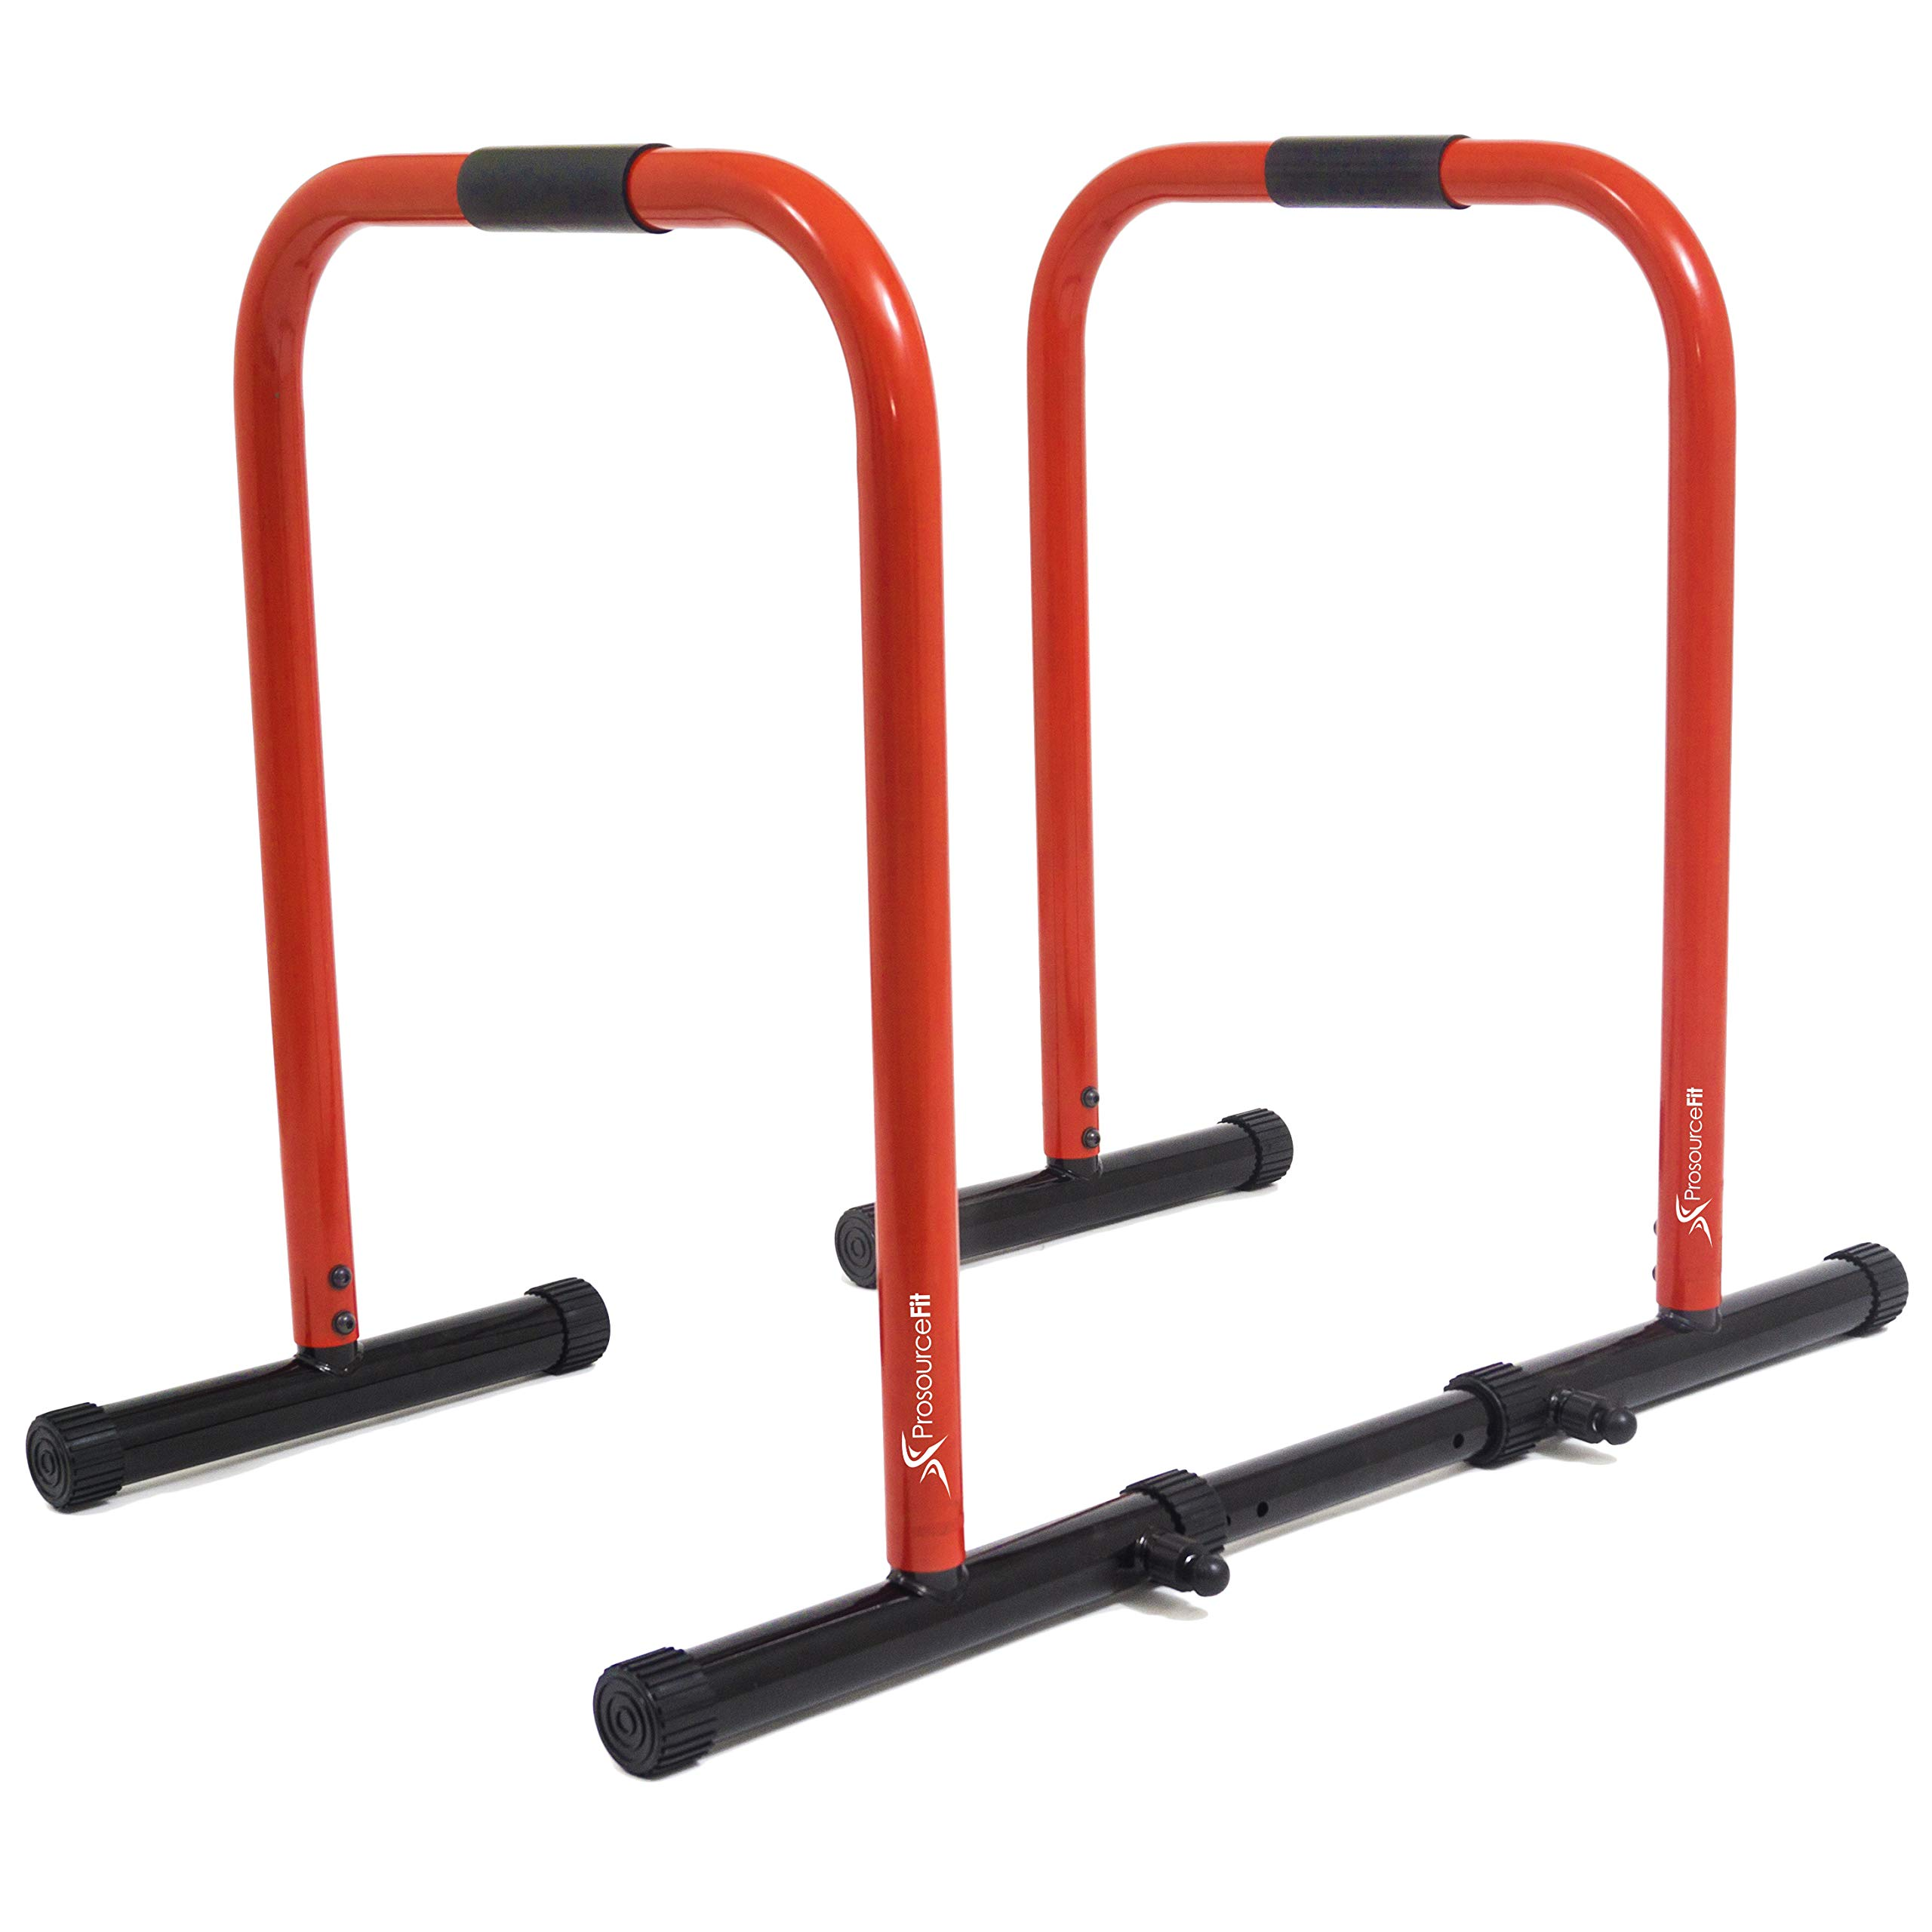 ProsourceFit Dip Stand Station, Heavy Duty Ultimate Body Press Bar with Safety Connector for Tricep Dips, Pull-Ups, Push-Ups, L-Sits, Red by ProsourceFit